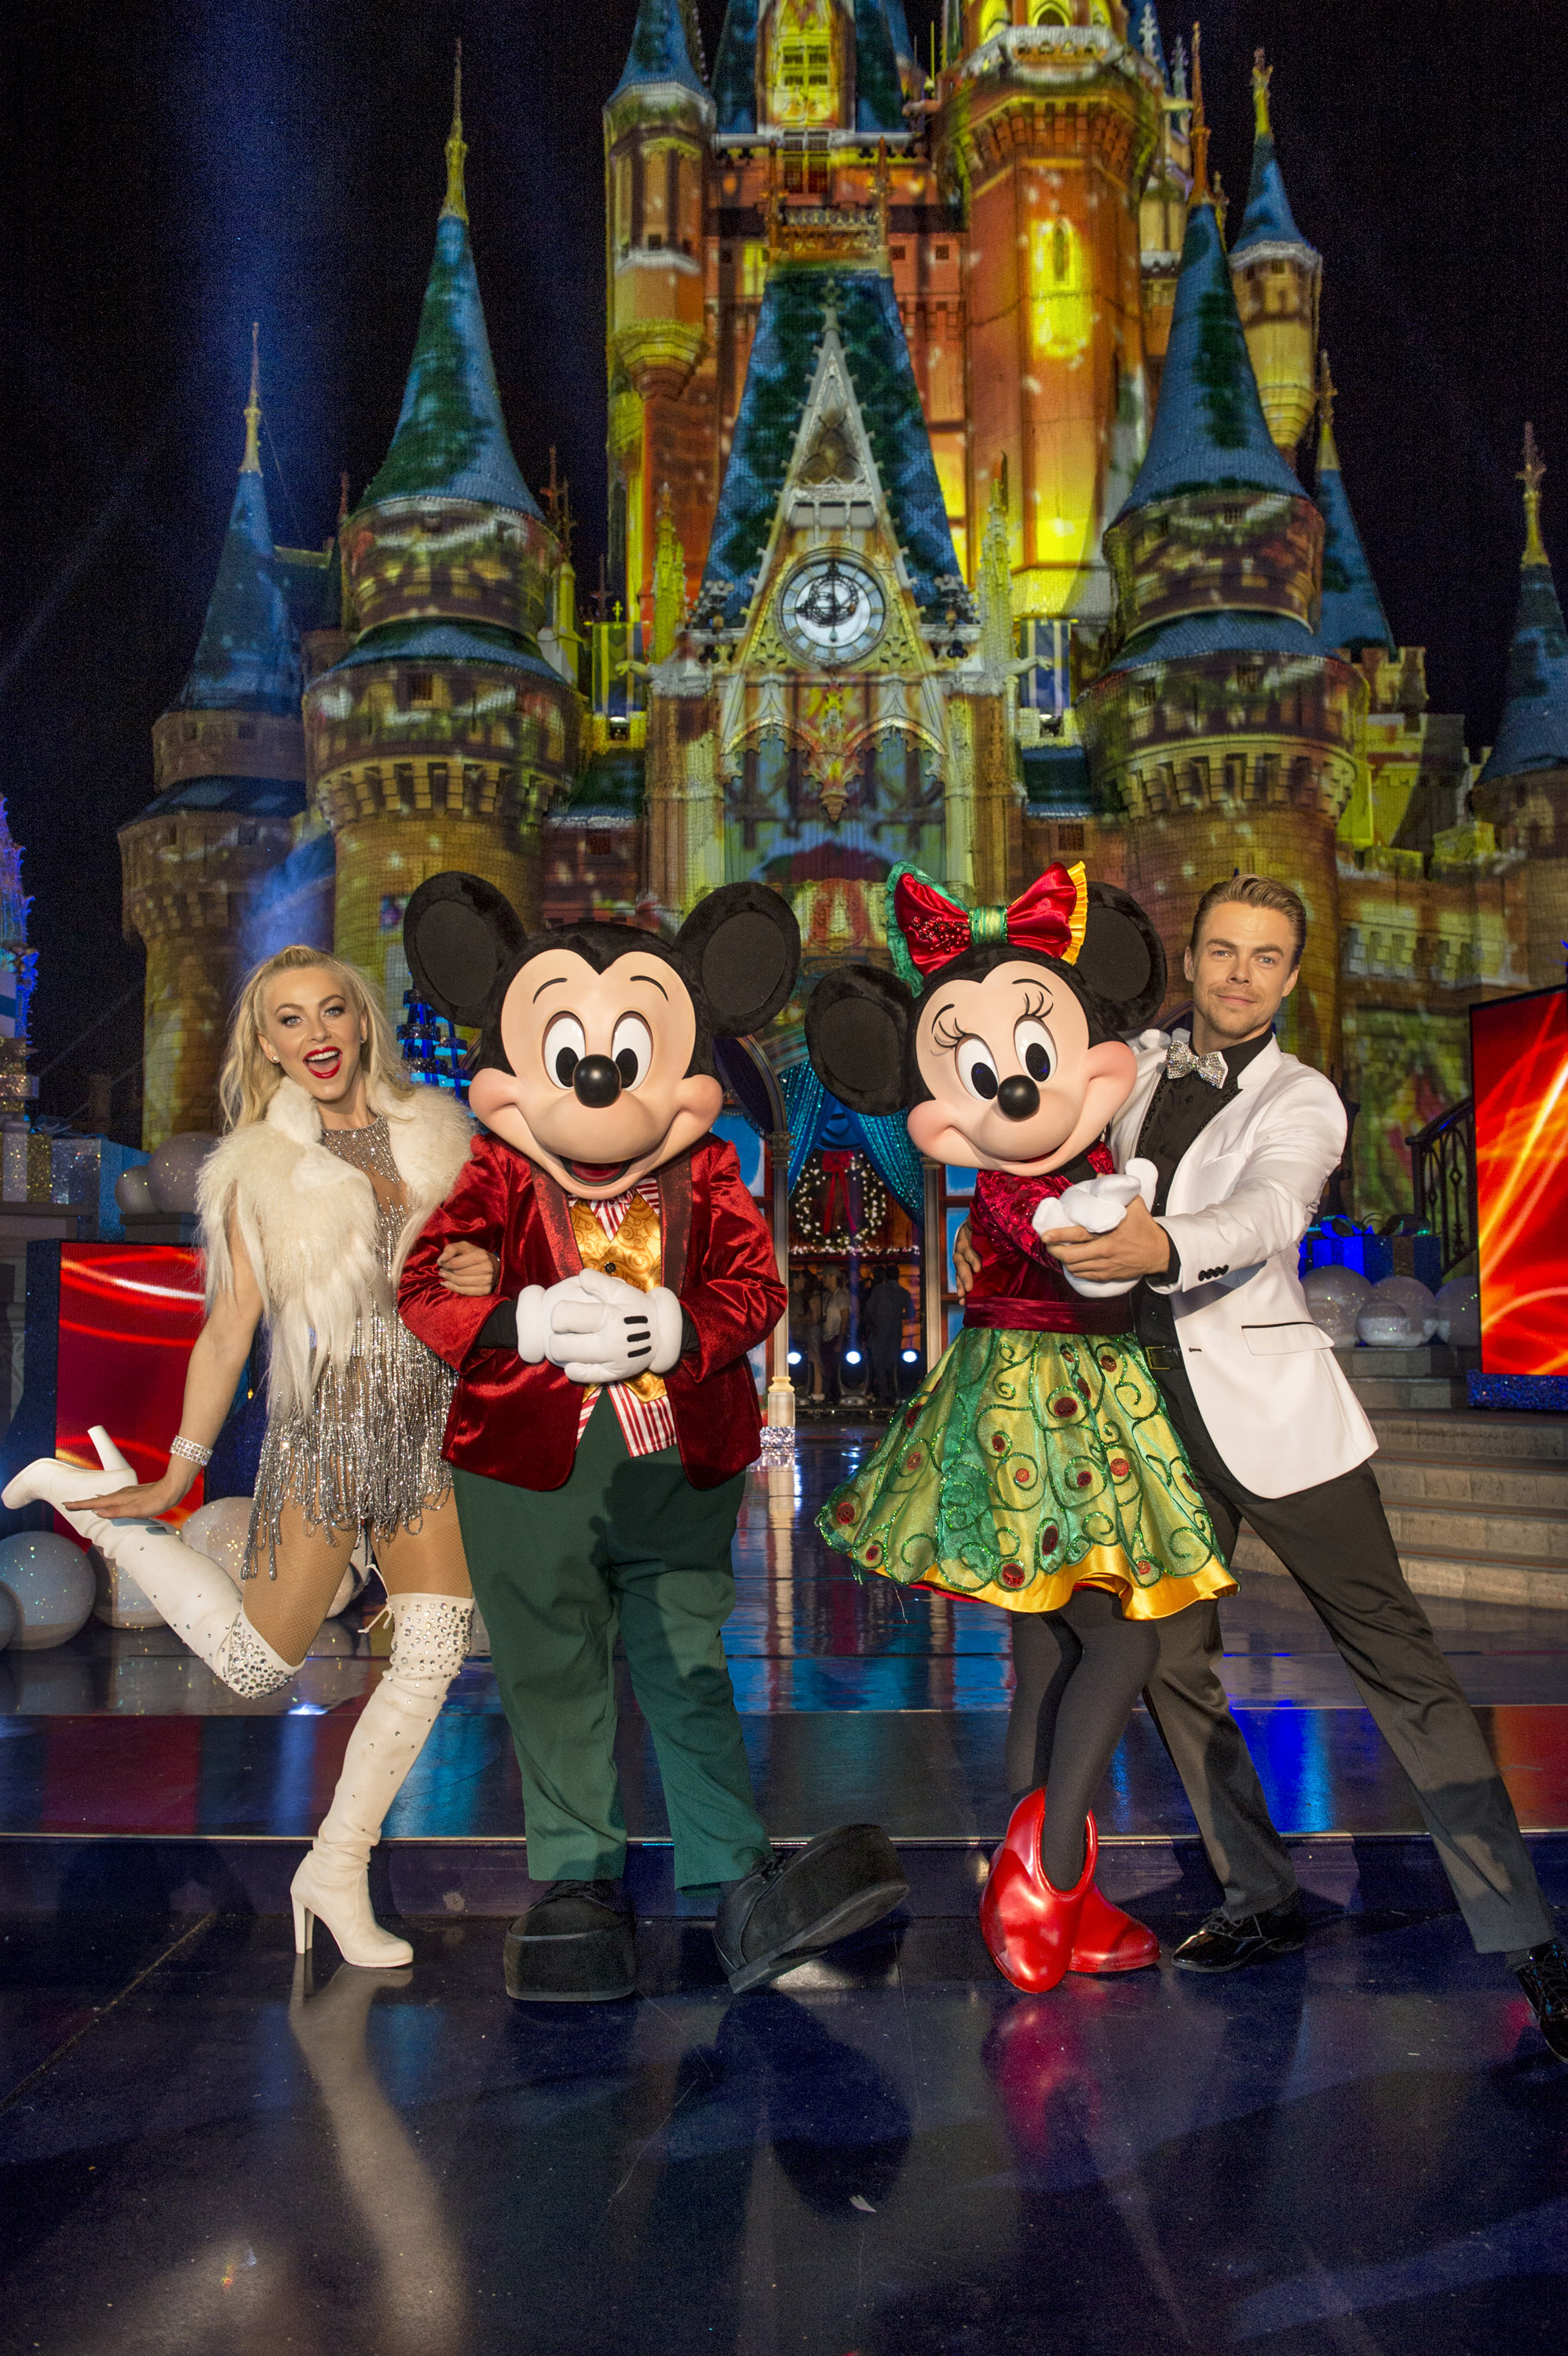 Julianne Hough and pro-dancer Derek Hough hosted the 2016 holiday specials